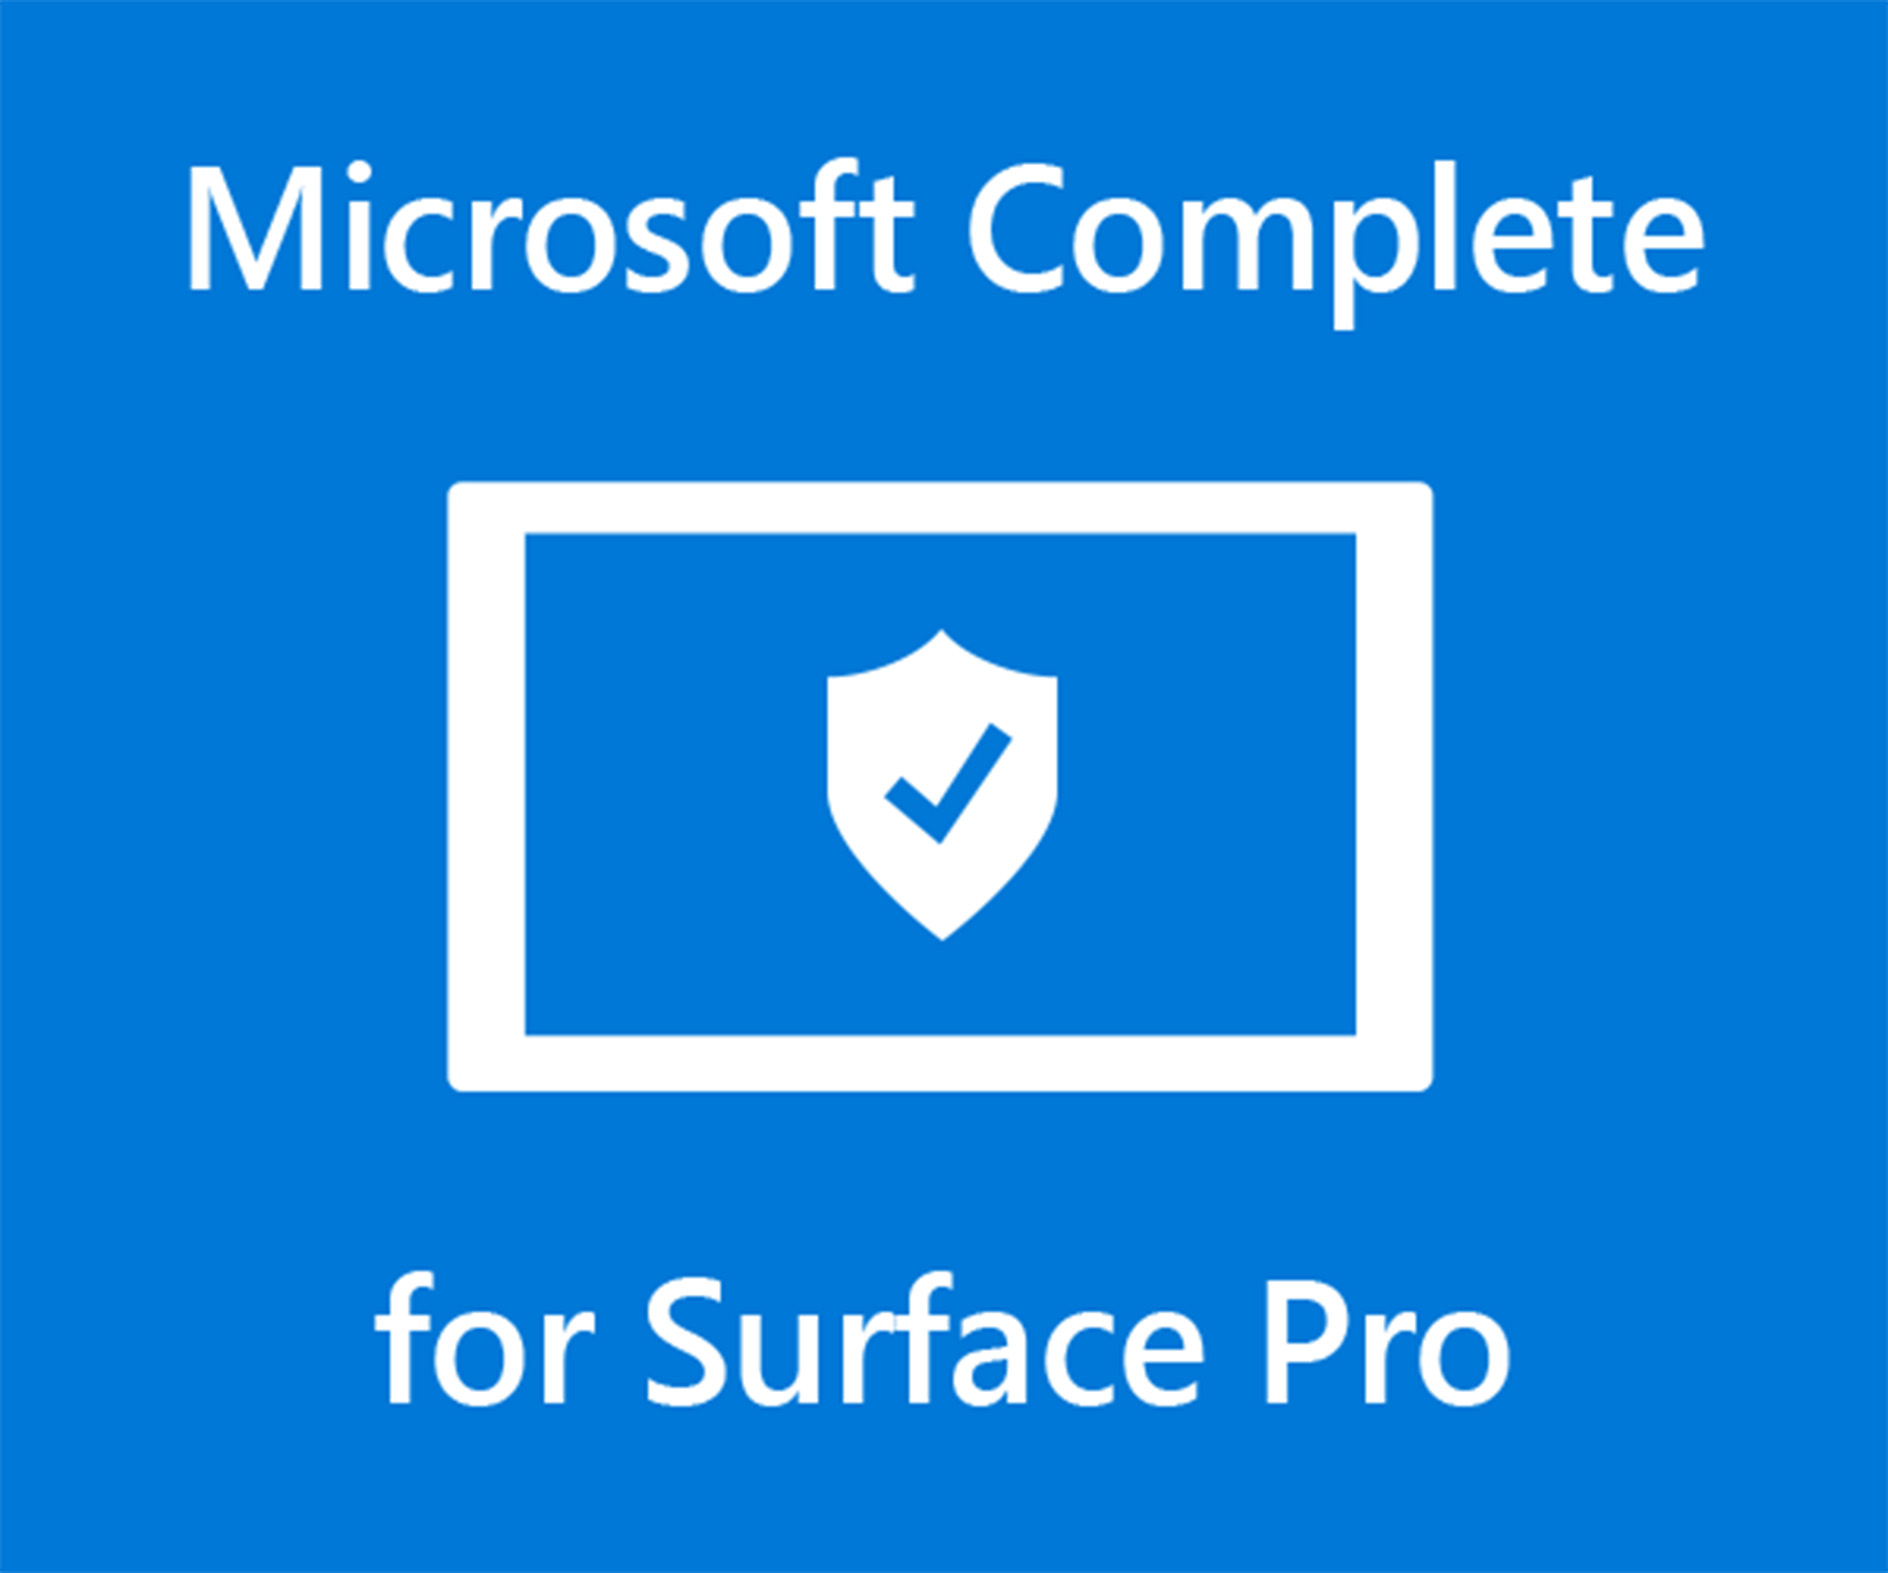 Microsoft Complete Surface Pro